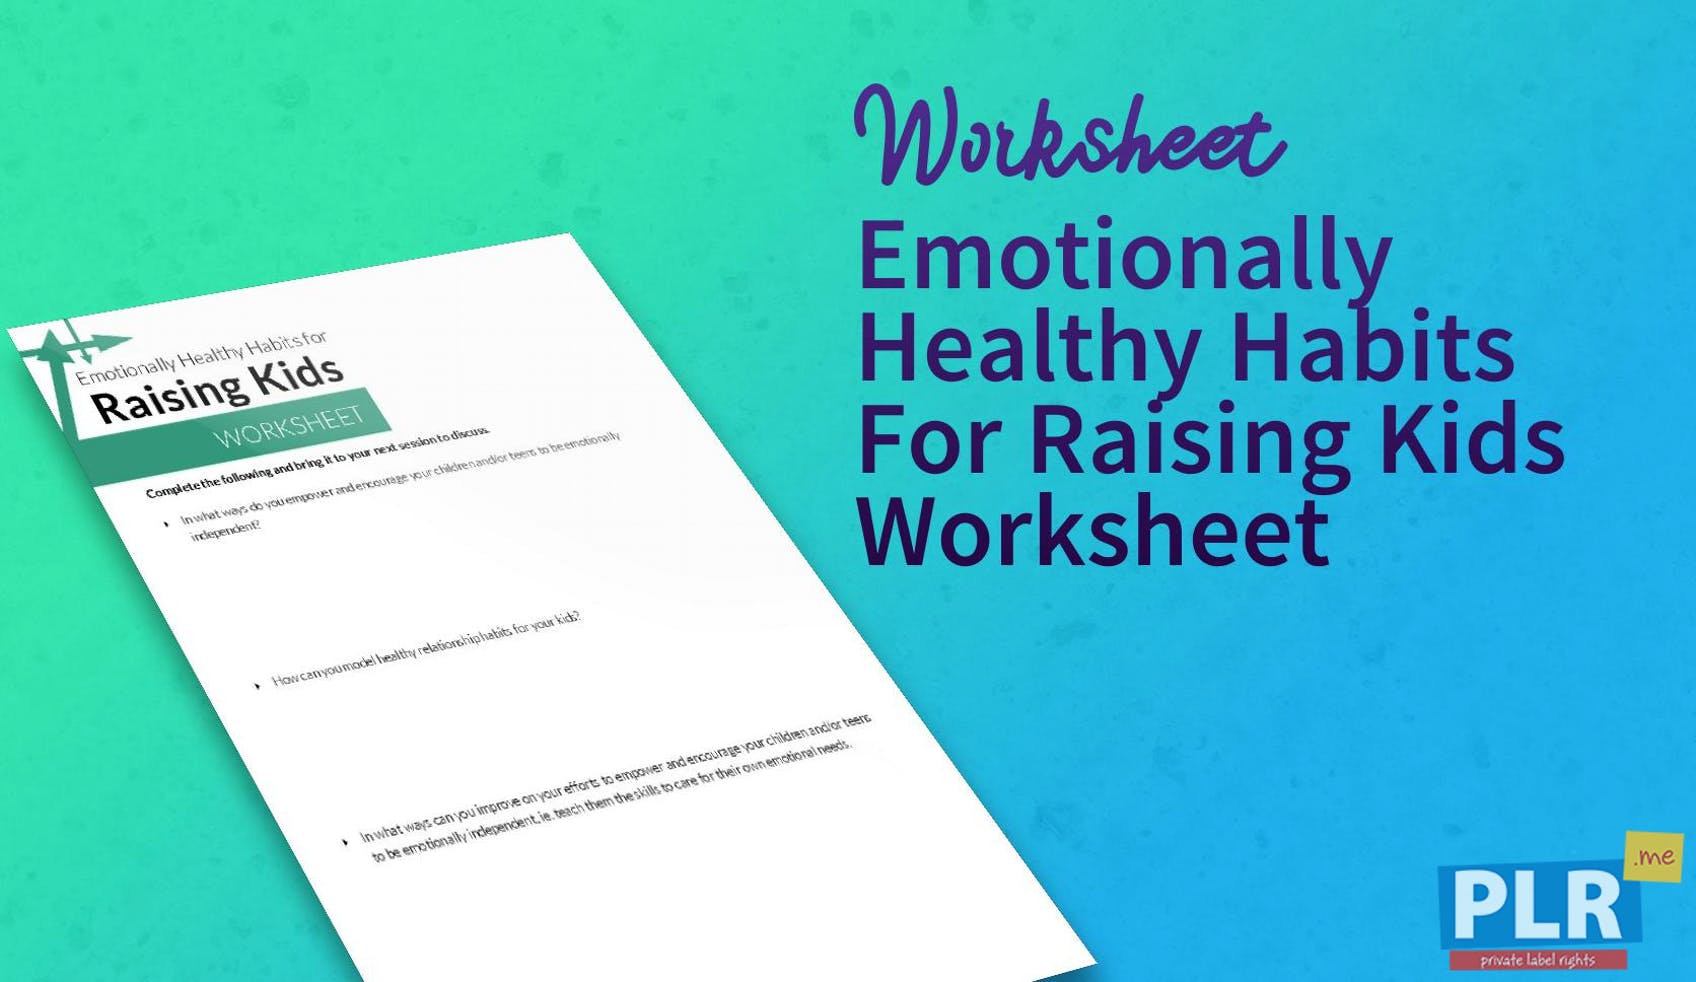 PLR Worksheets - Emotionally Healthy Habits For Raising Kids ...